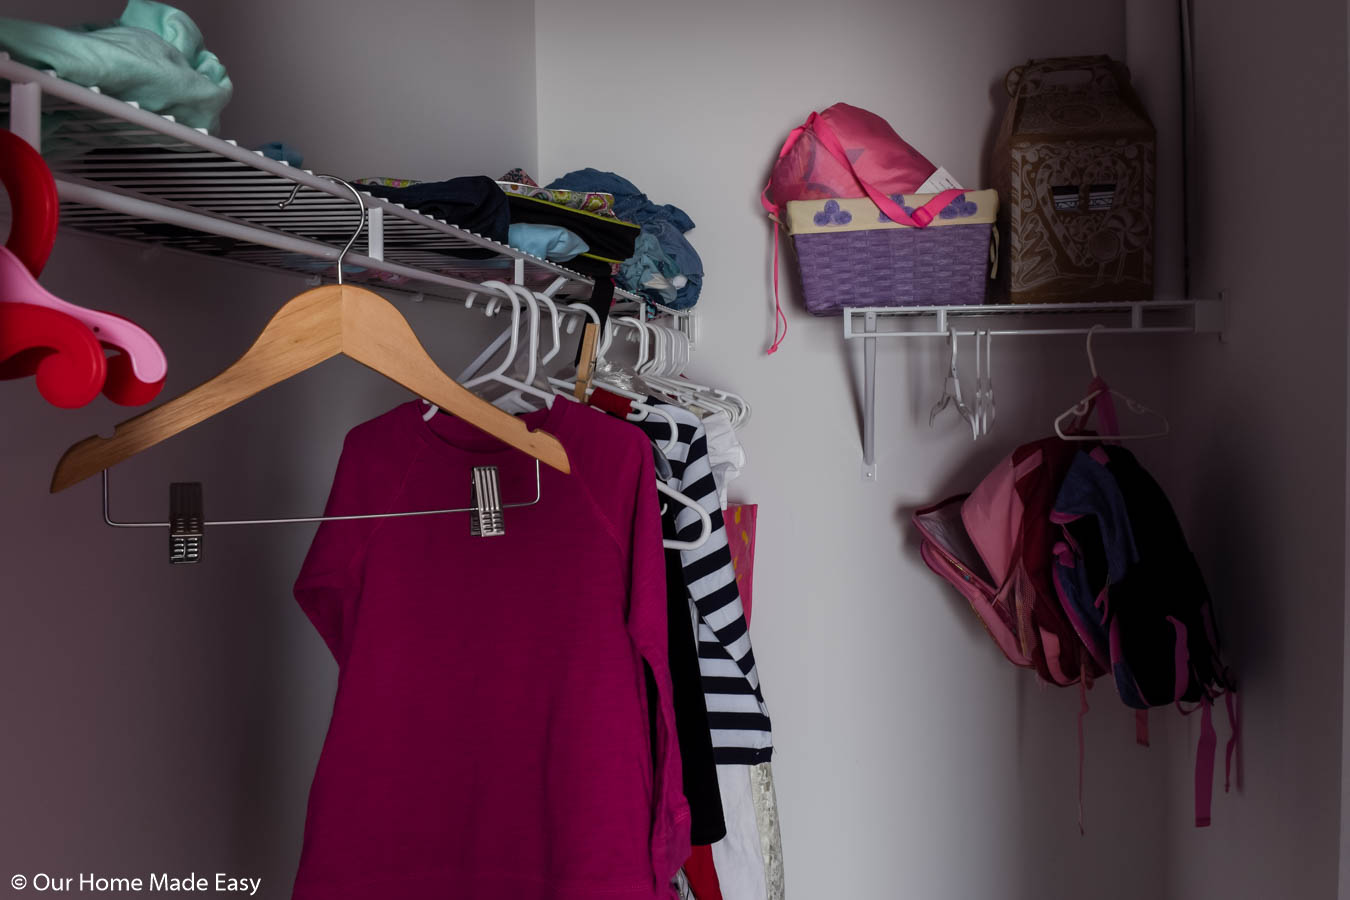 Our small walk-in closet had minimal storage and not enough space to really organize well